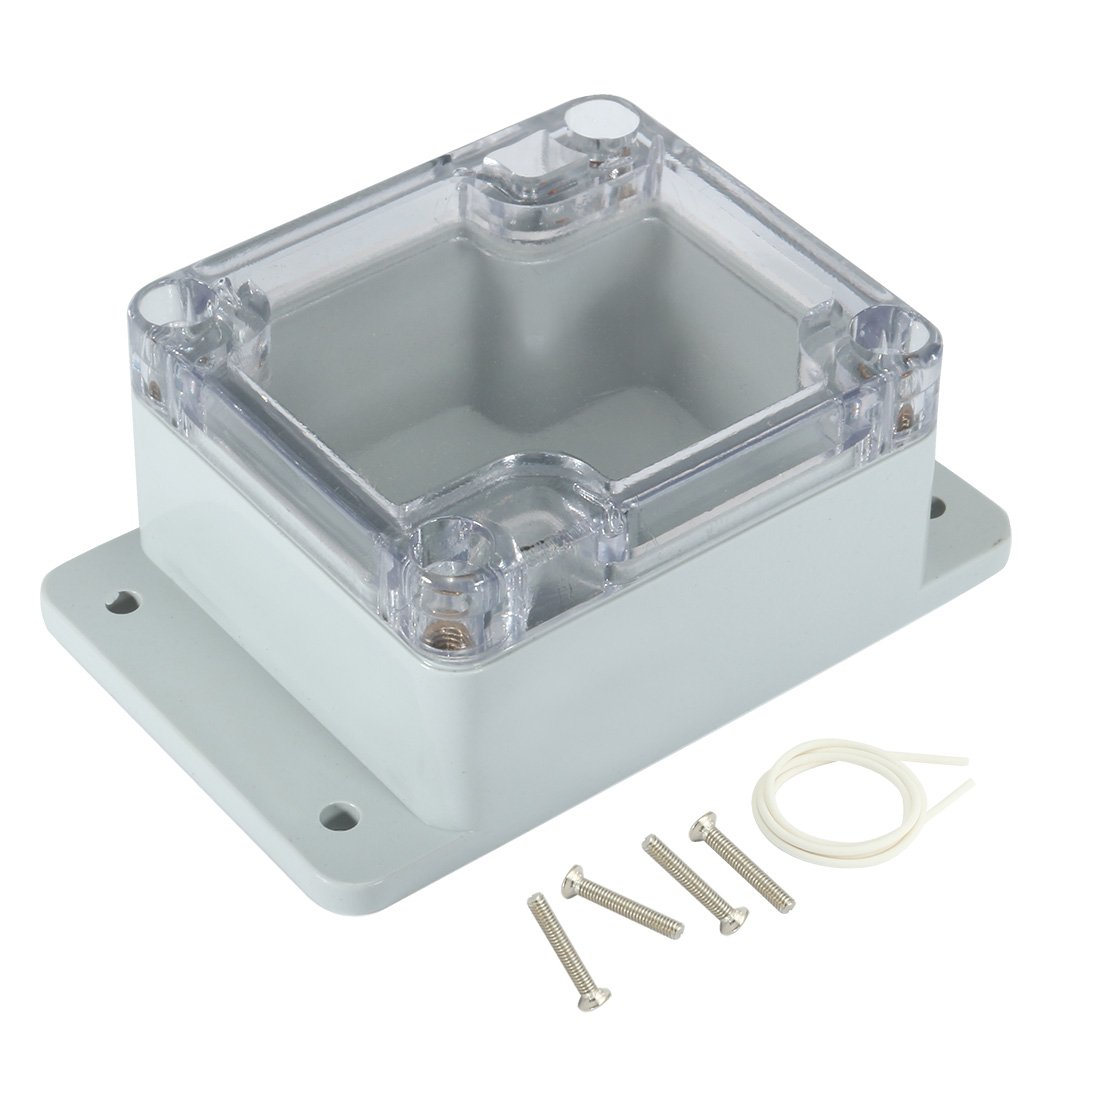 uxcell 2.5x2.3x1.4(63mmx58mmx35mm) ABS Junction Box Universal Project Enclosure w PC Transparent Cover a17031600ux1148